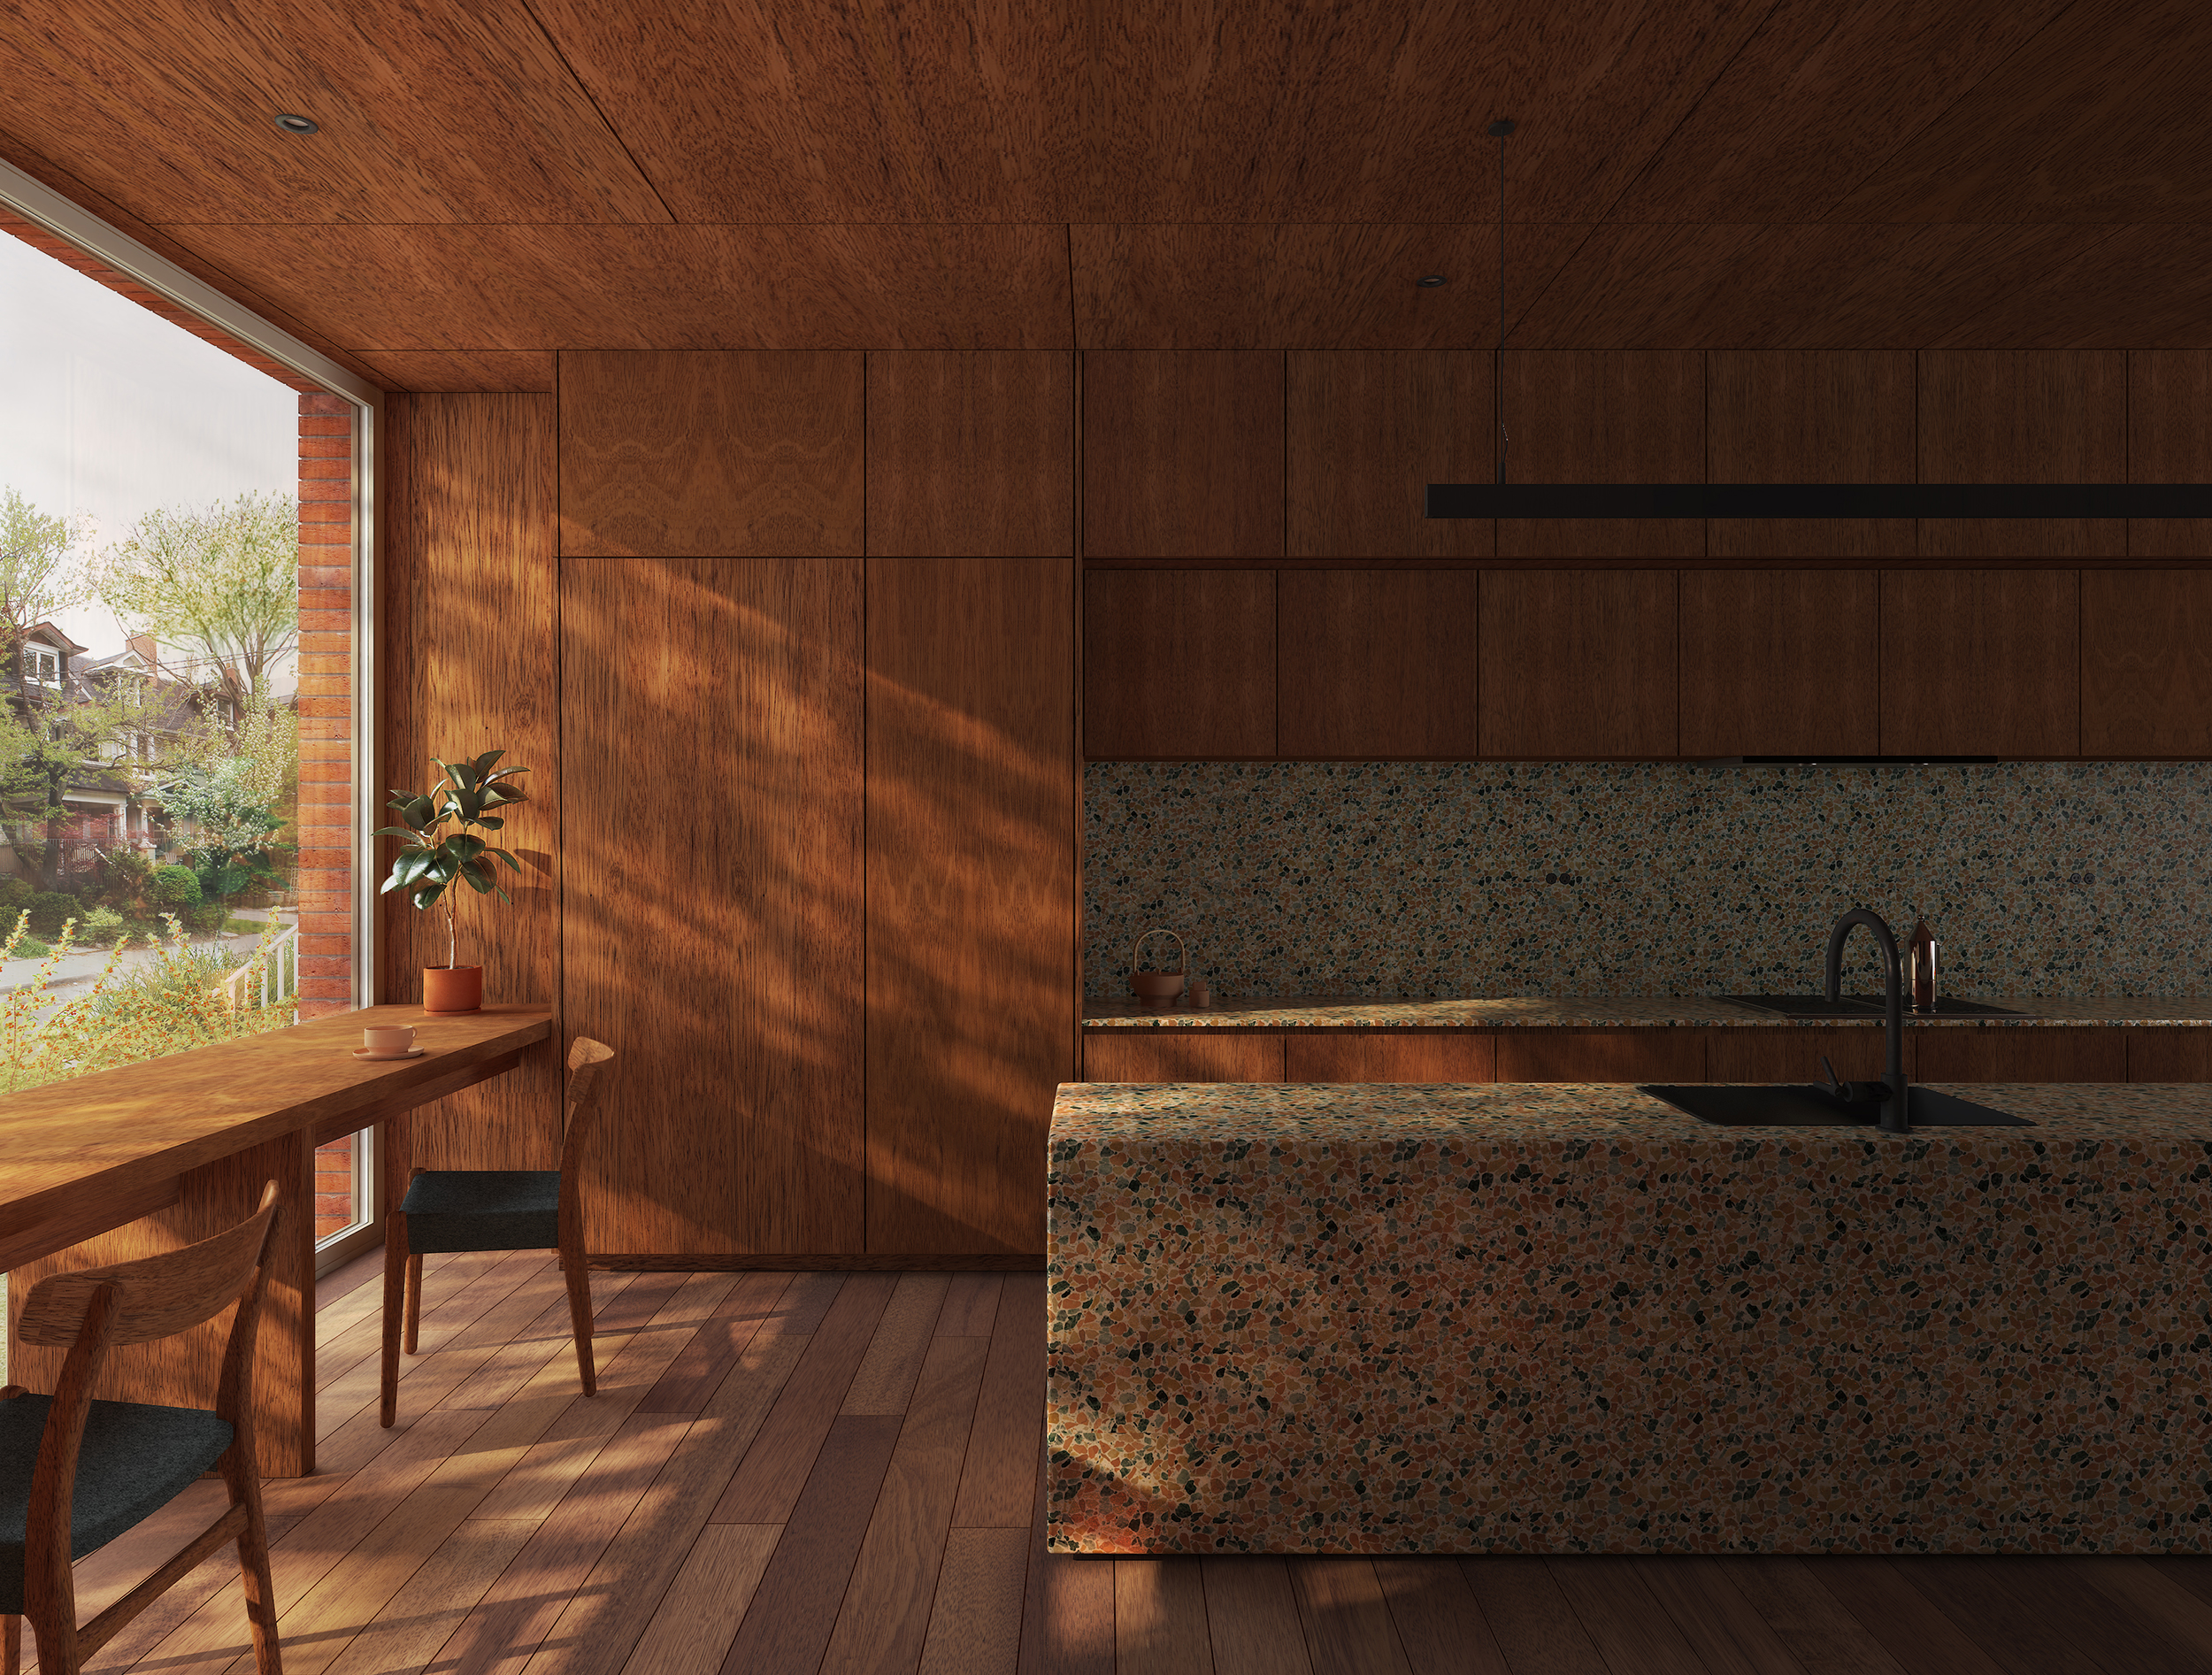 Interior view of kitchen with breakfast nook, wood millwork, and terrazzo counters